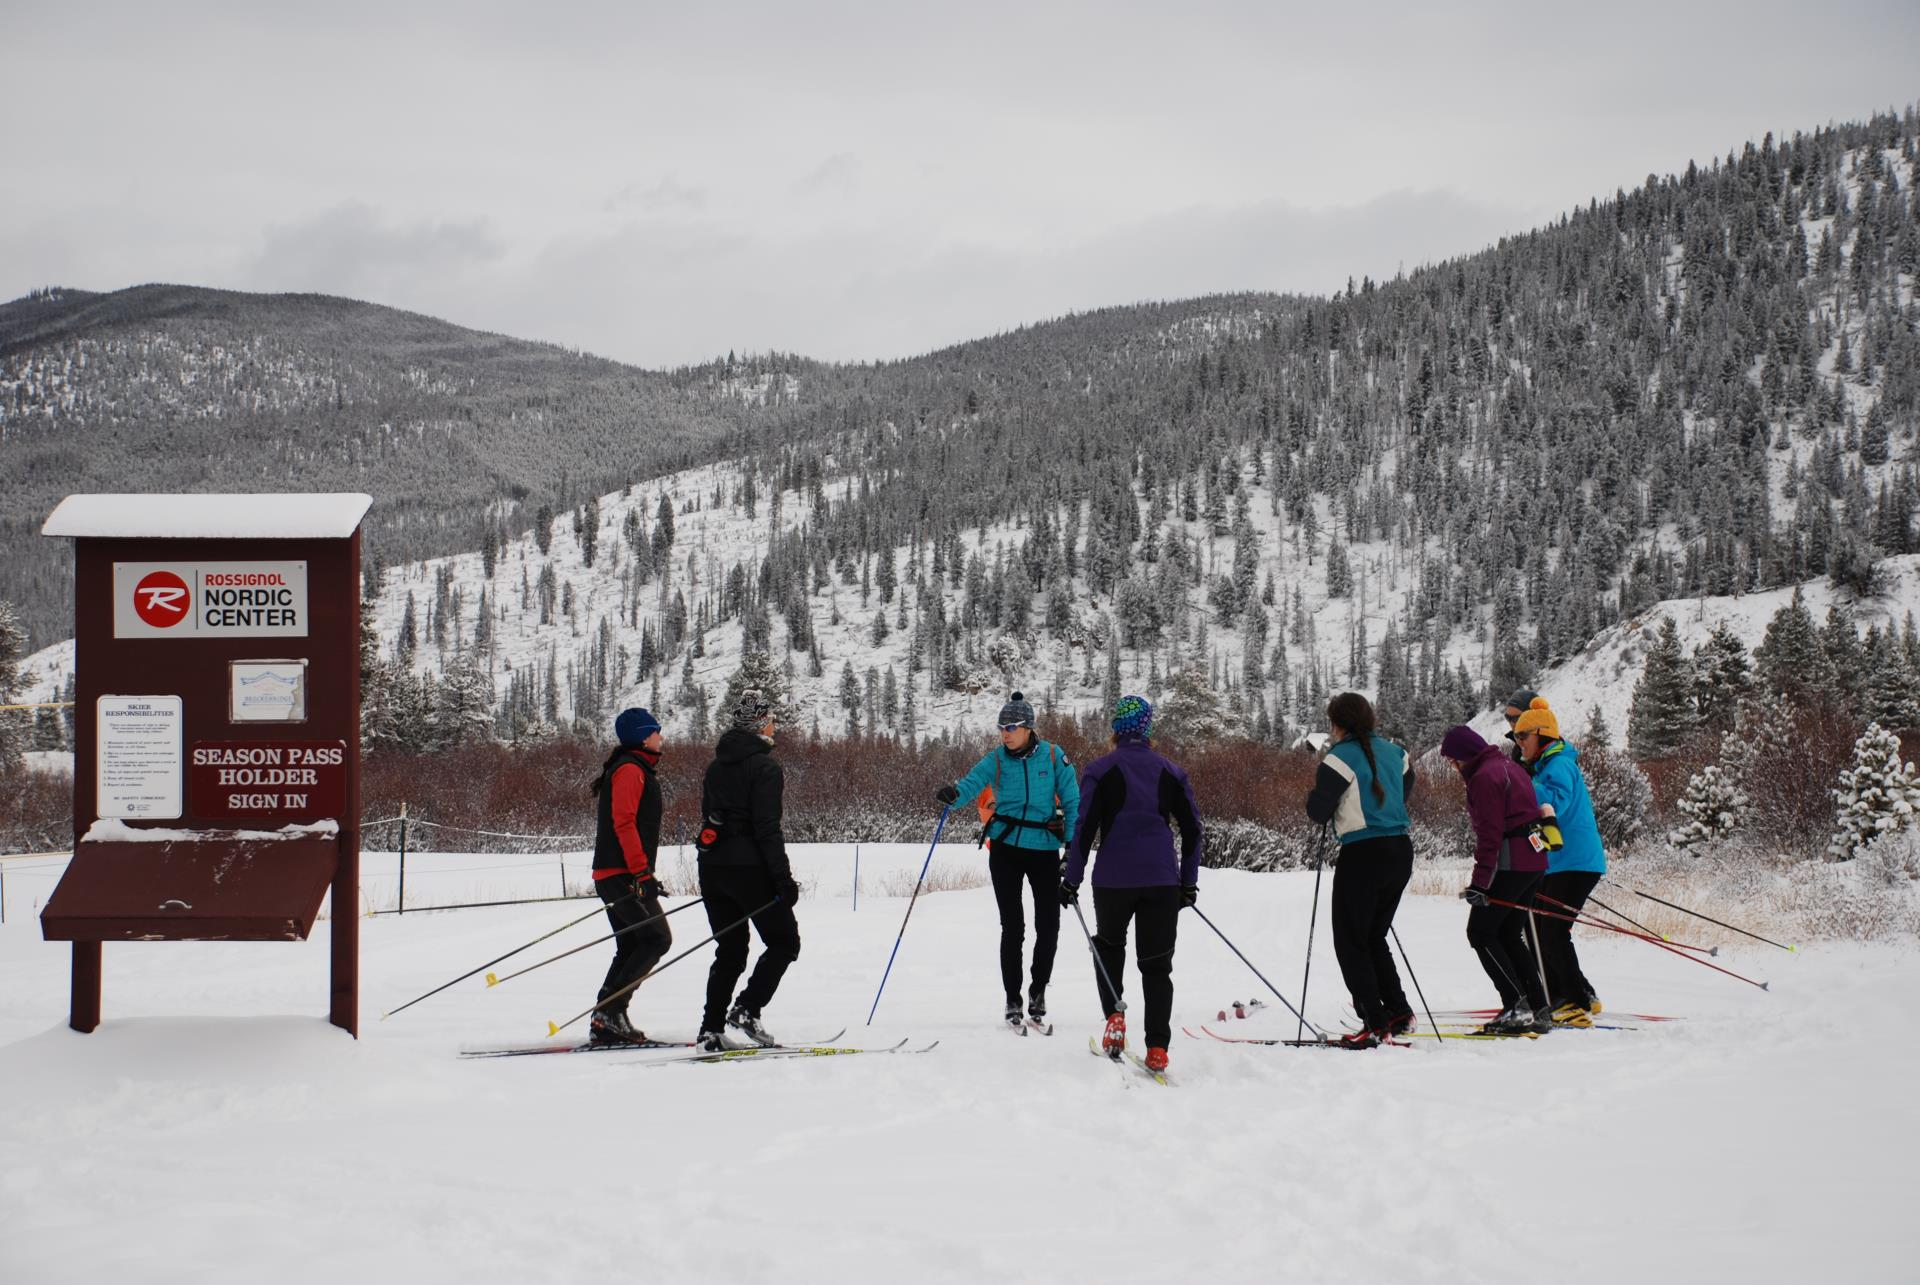 Group of five Nordic skiers in a winter mountain setting